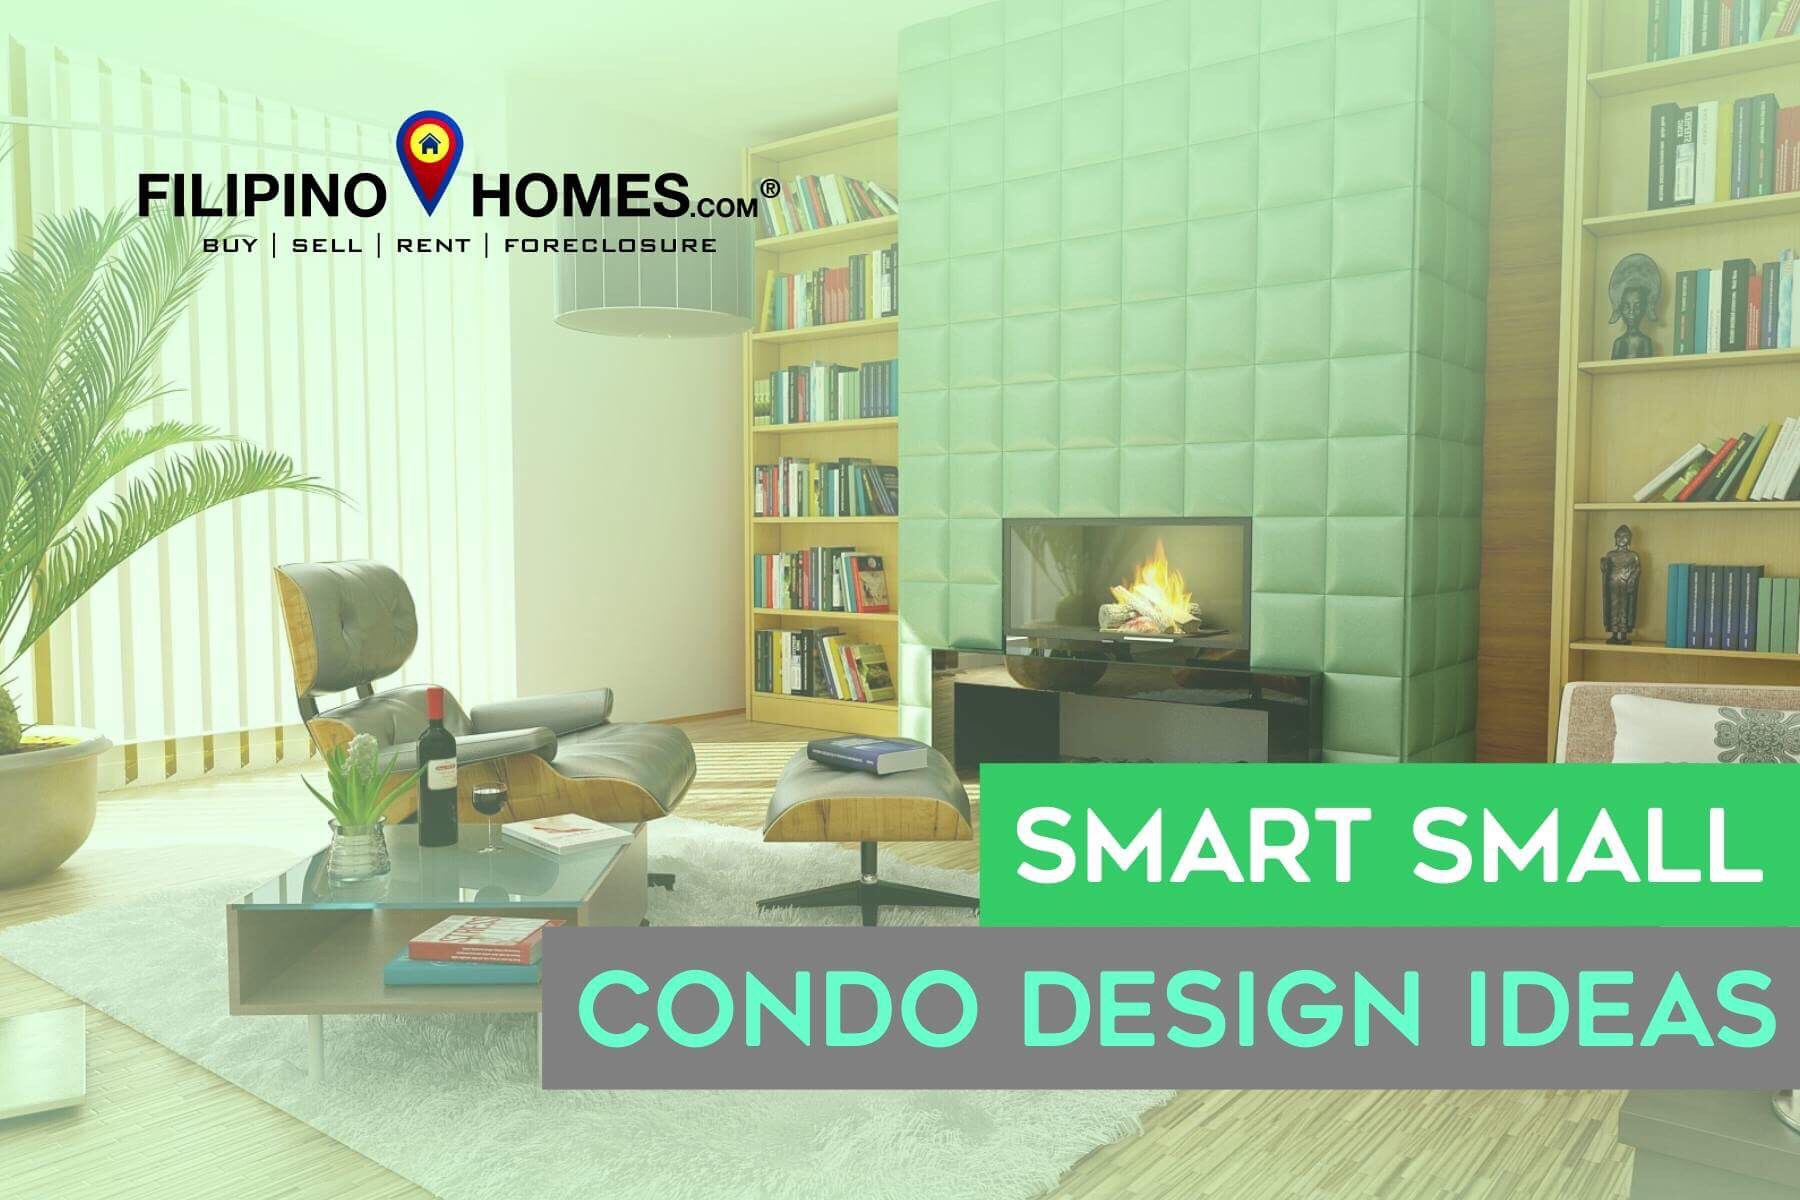 Smart And Affordable Small Condo Design Ideas